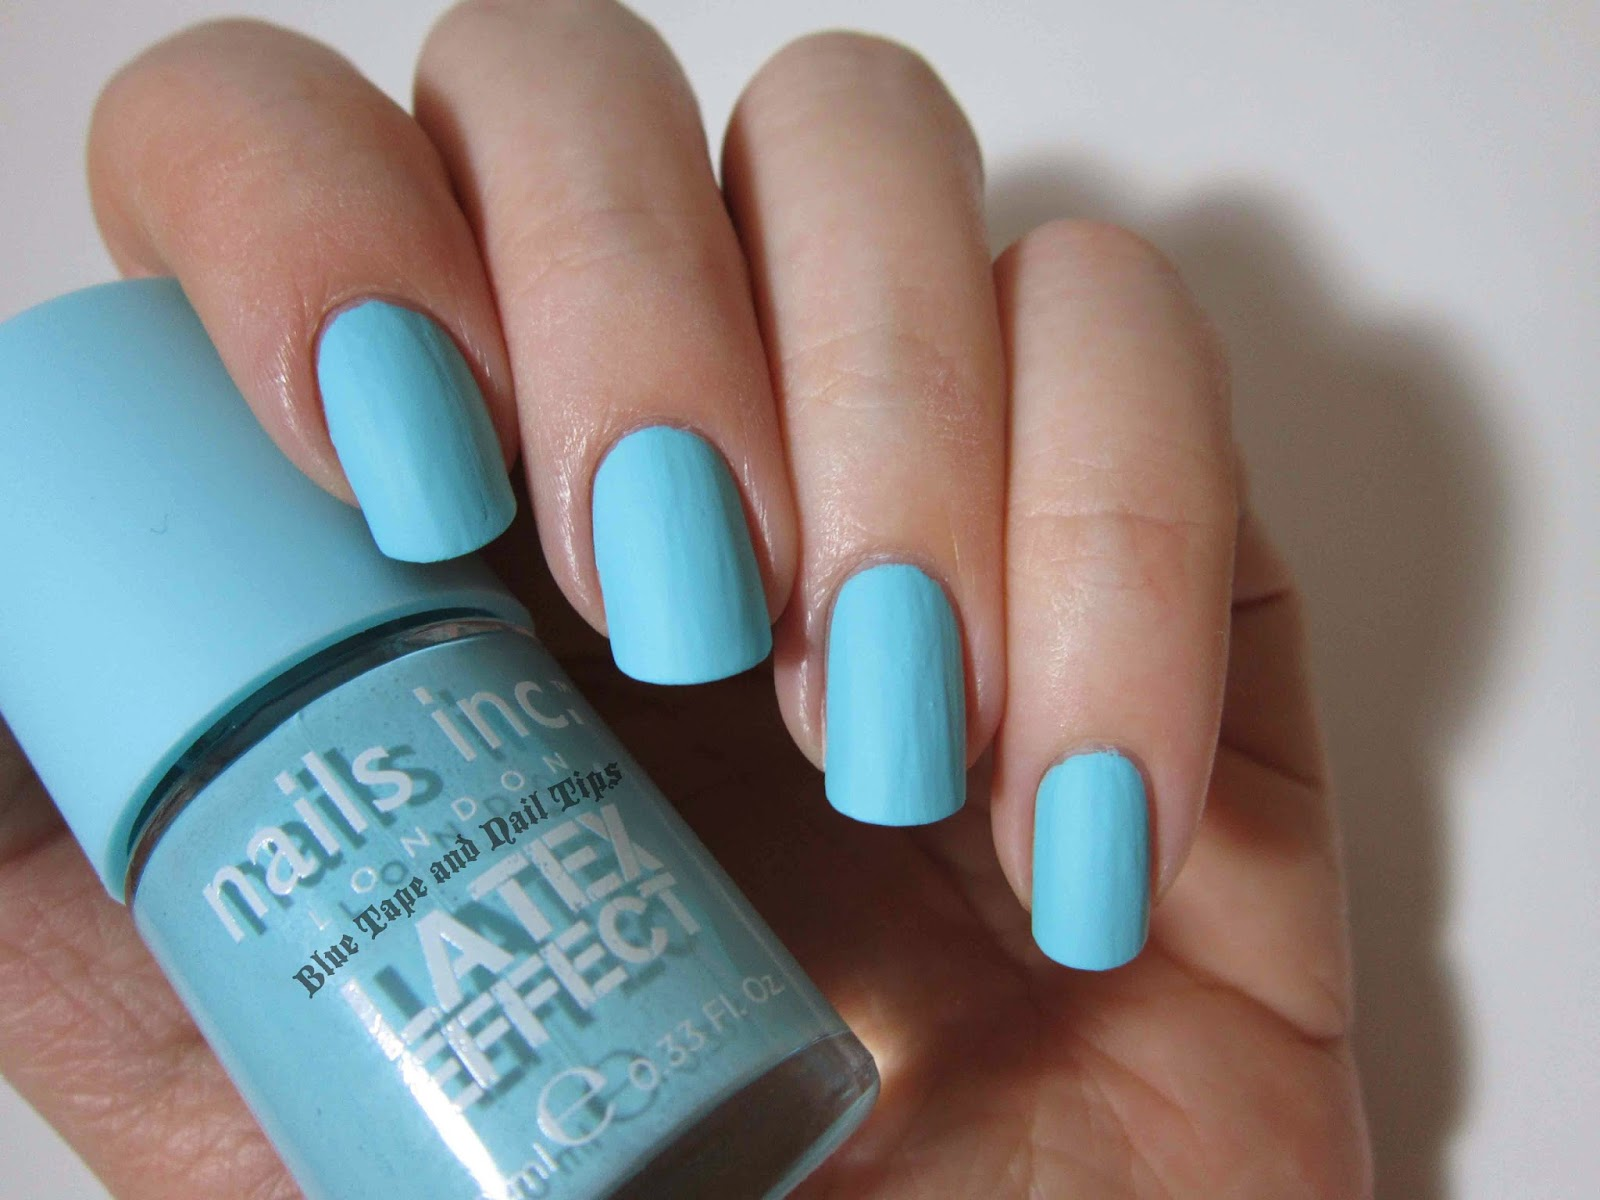 Blue Tape and Nail Tips: Nails Inc. Latex Effect Swatches